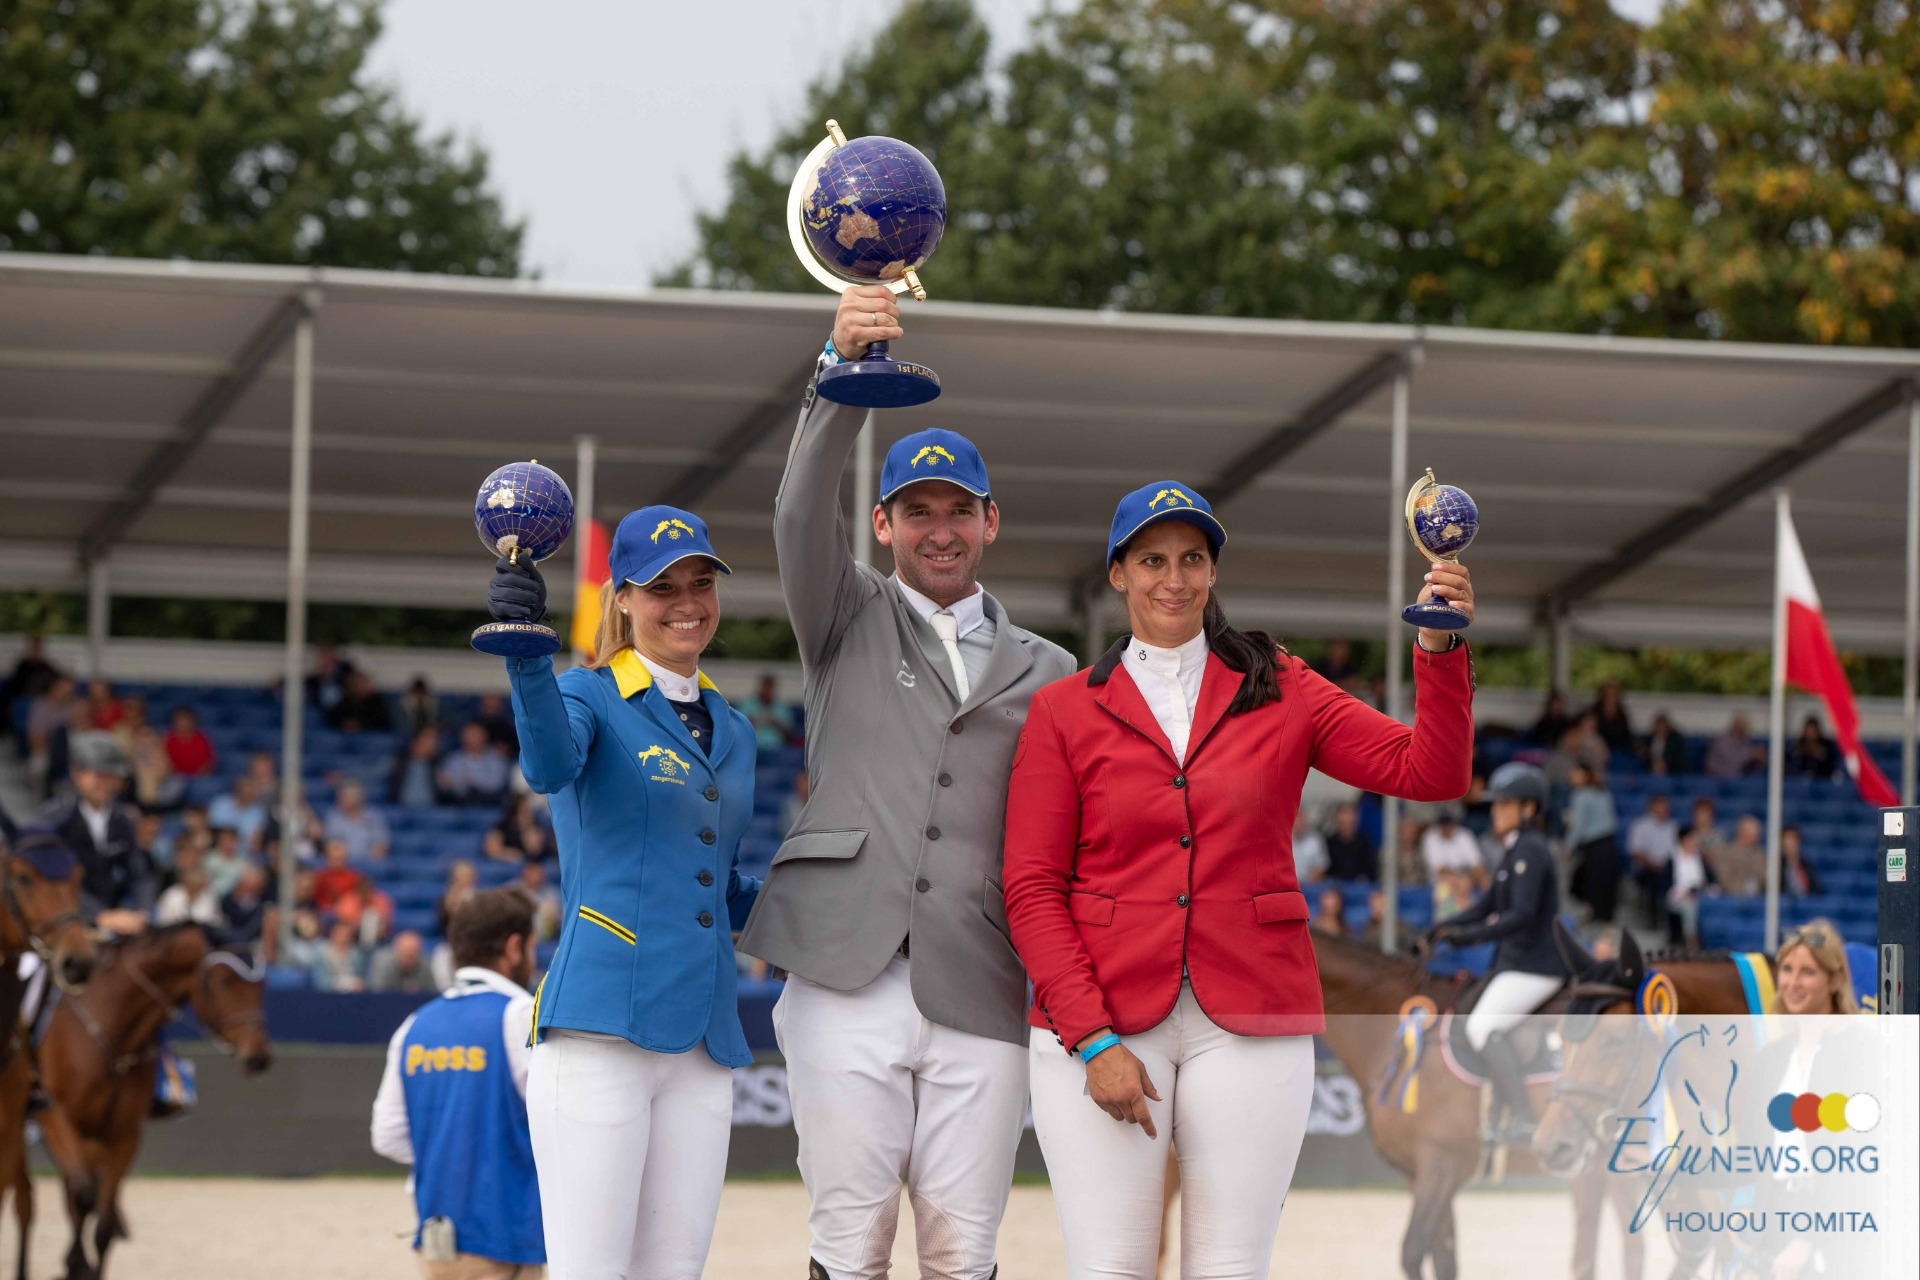 Weishaupt and Cornet-Oblensky stallion Coros world champion in the 6-year-olds